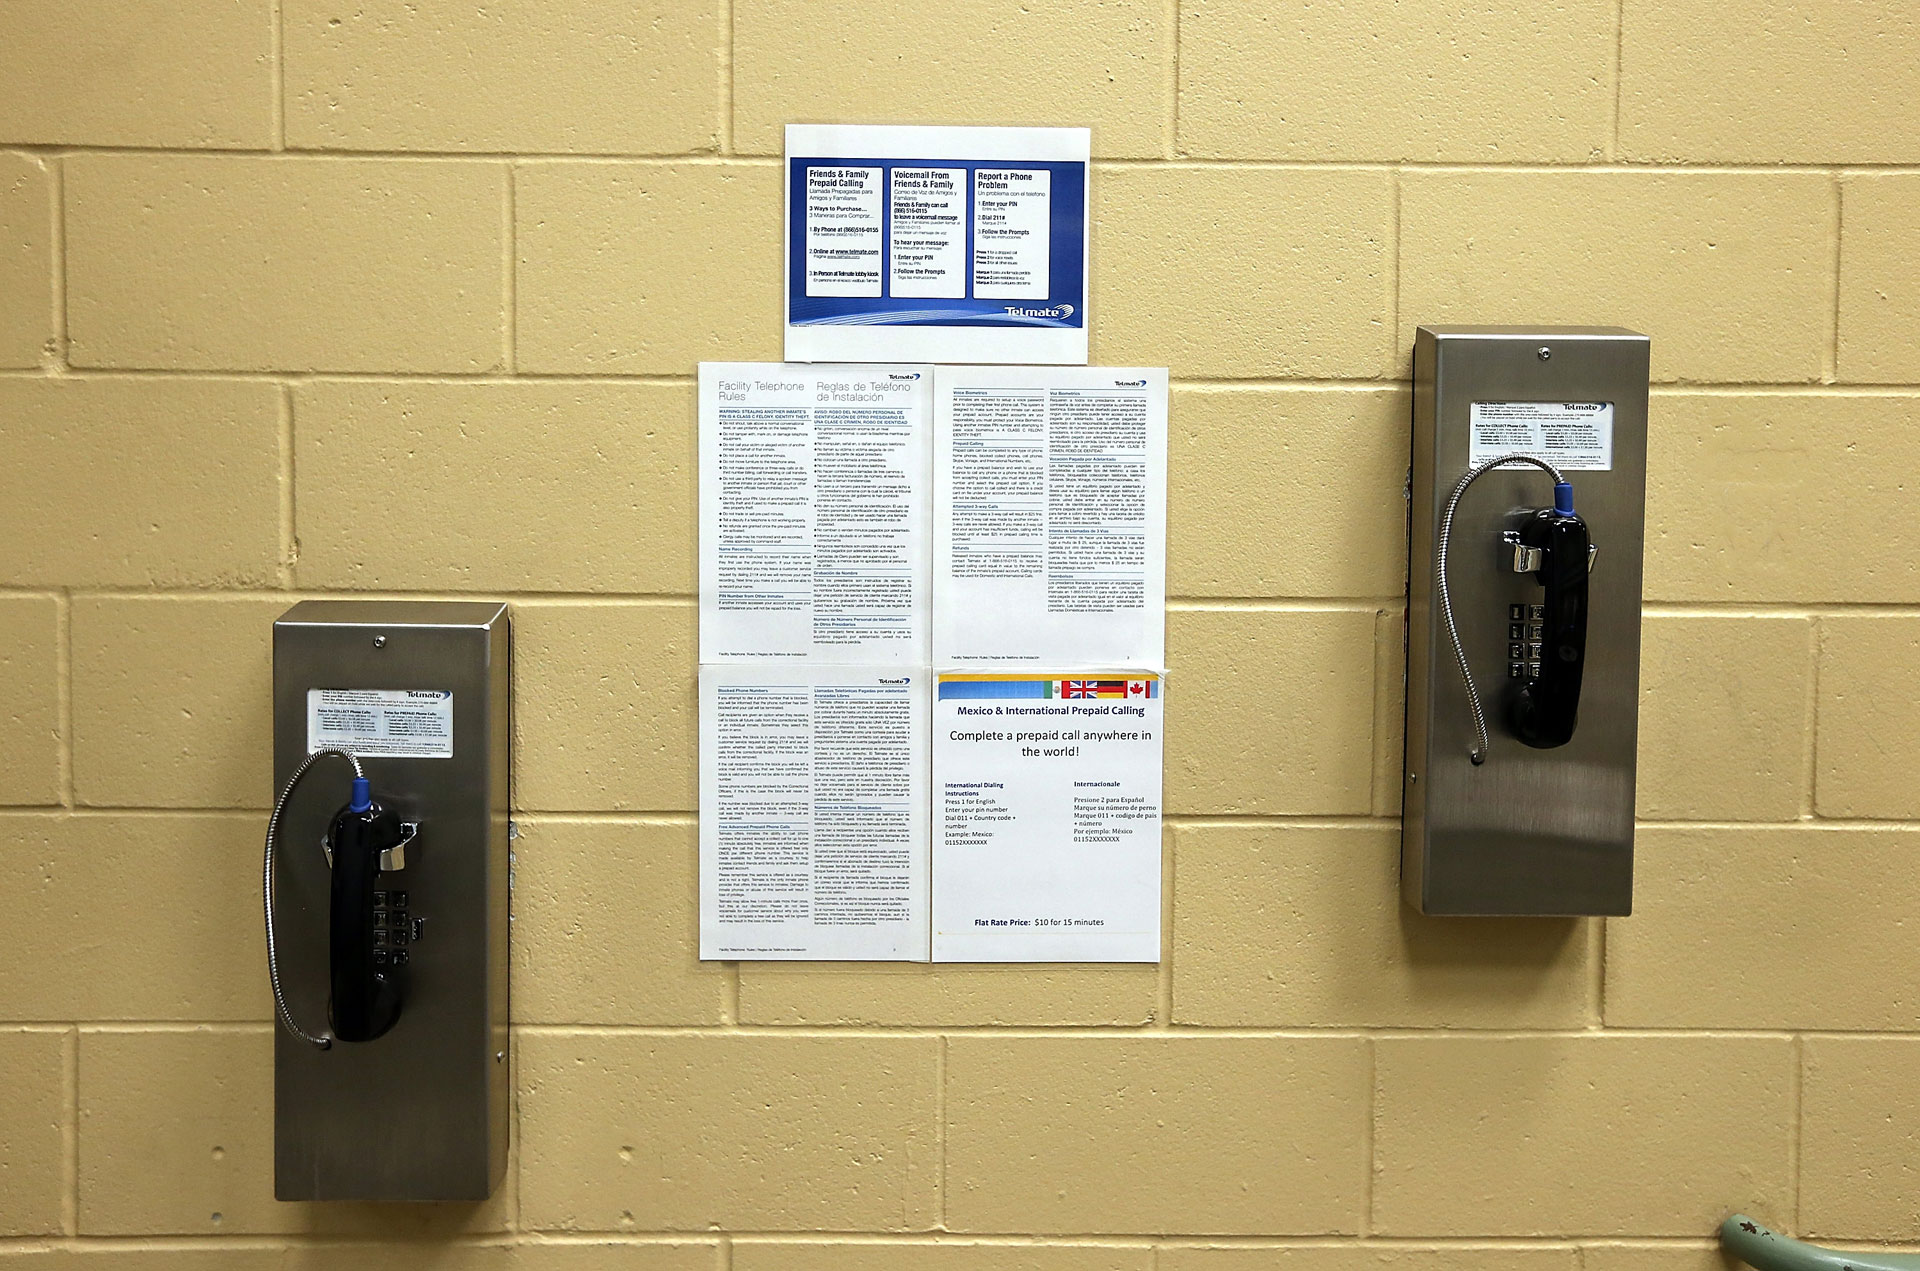 Pay phones for inmates at the Fremont Police Detention Facility in Fremont, California.